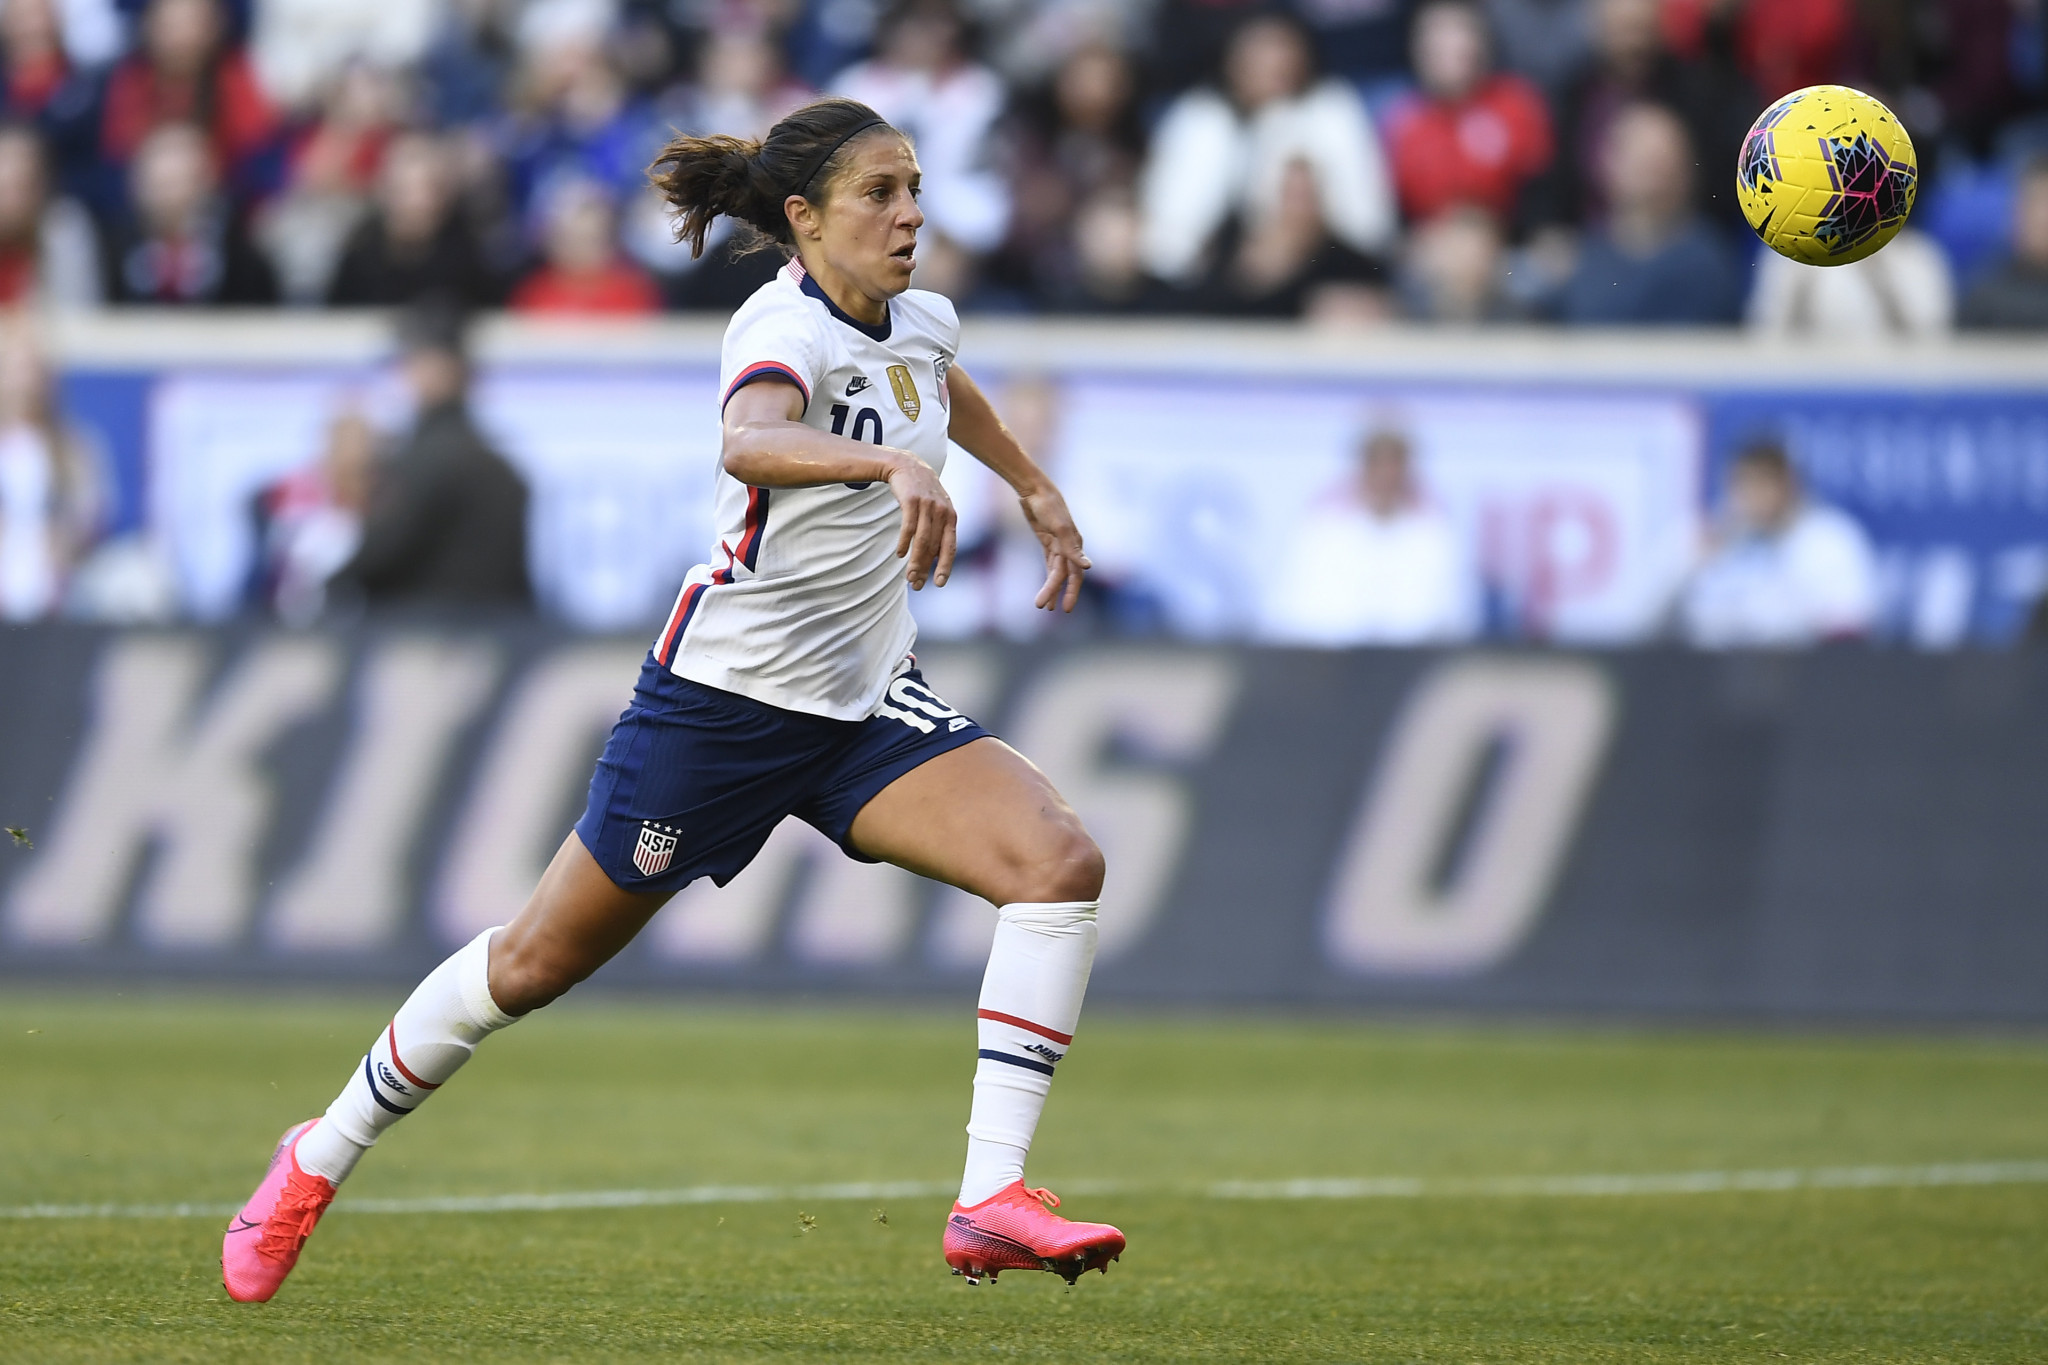 US women's football star Lloyd set for retirement after Tokyo 2020